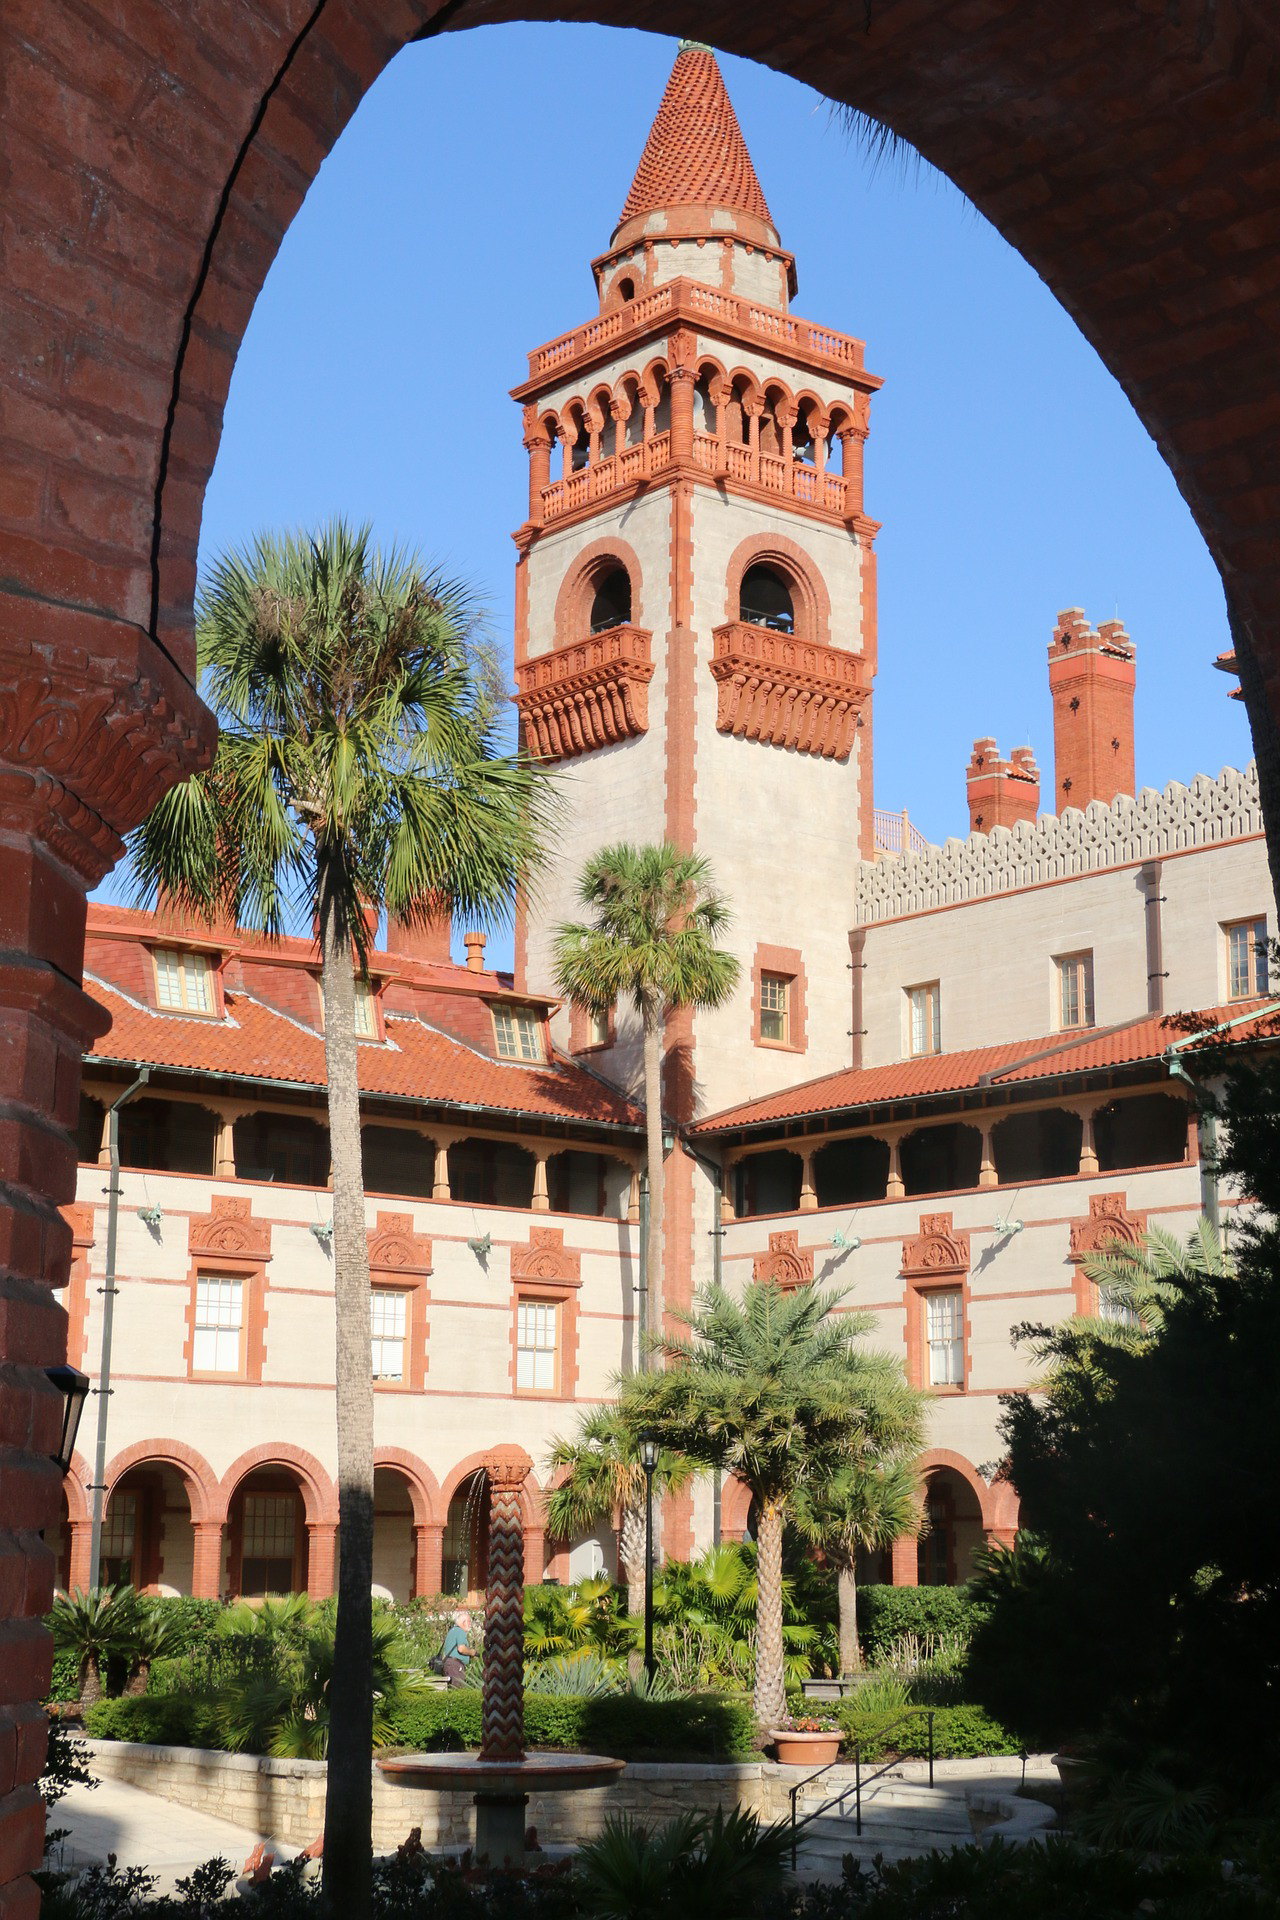 Photo of the architecture of the Ponce de Leon Hotel (Flagler College)